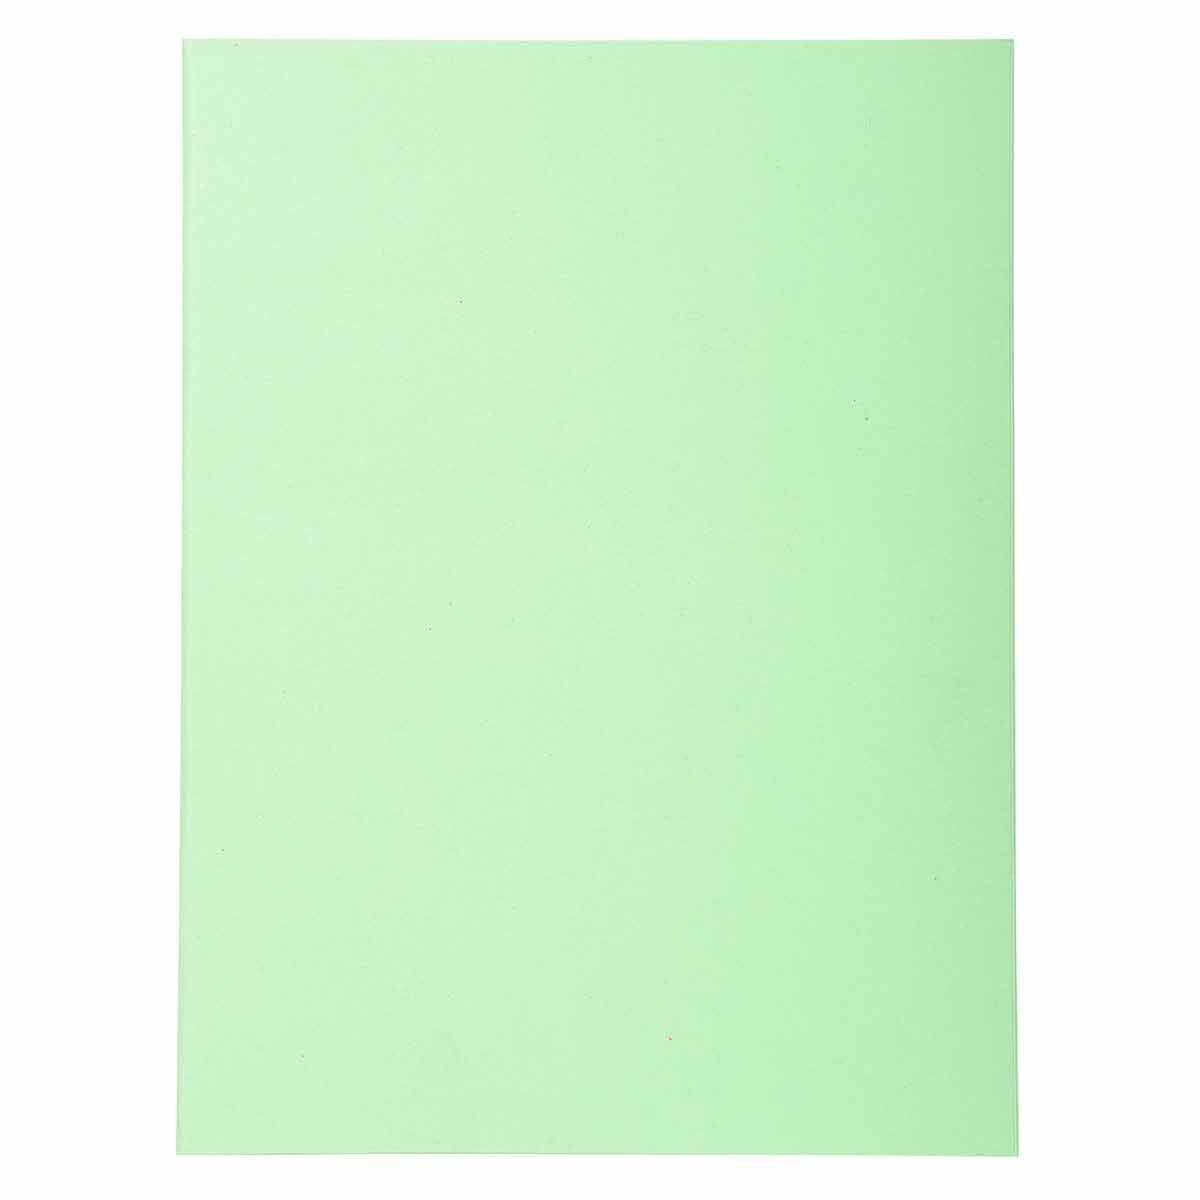 Exacompta Forever Square Cut Folders A4 170gsm 5 Packs of 100 Pale Green